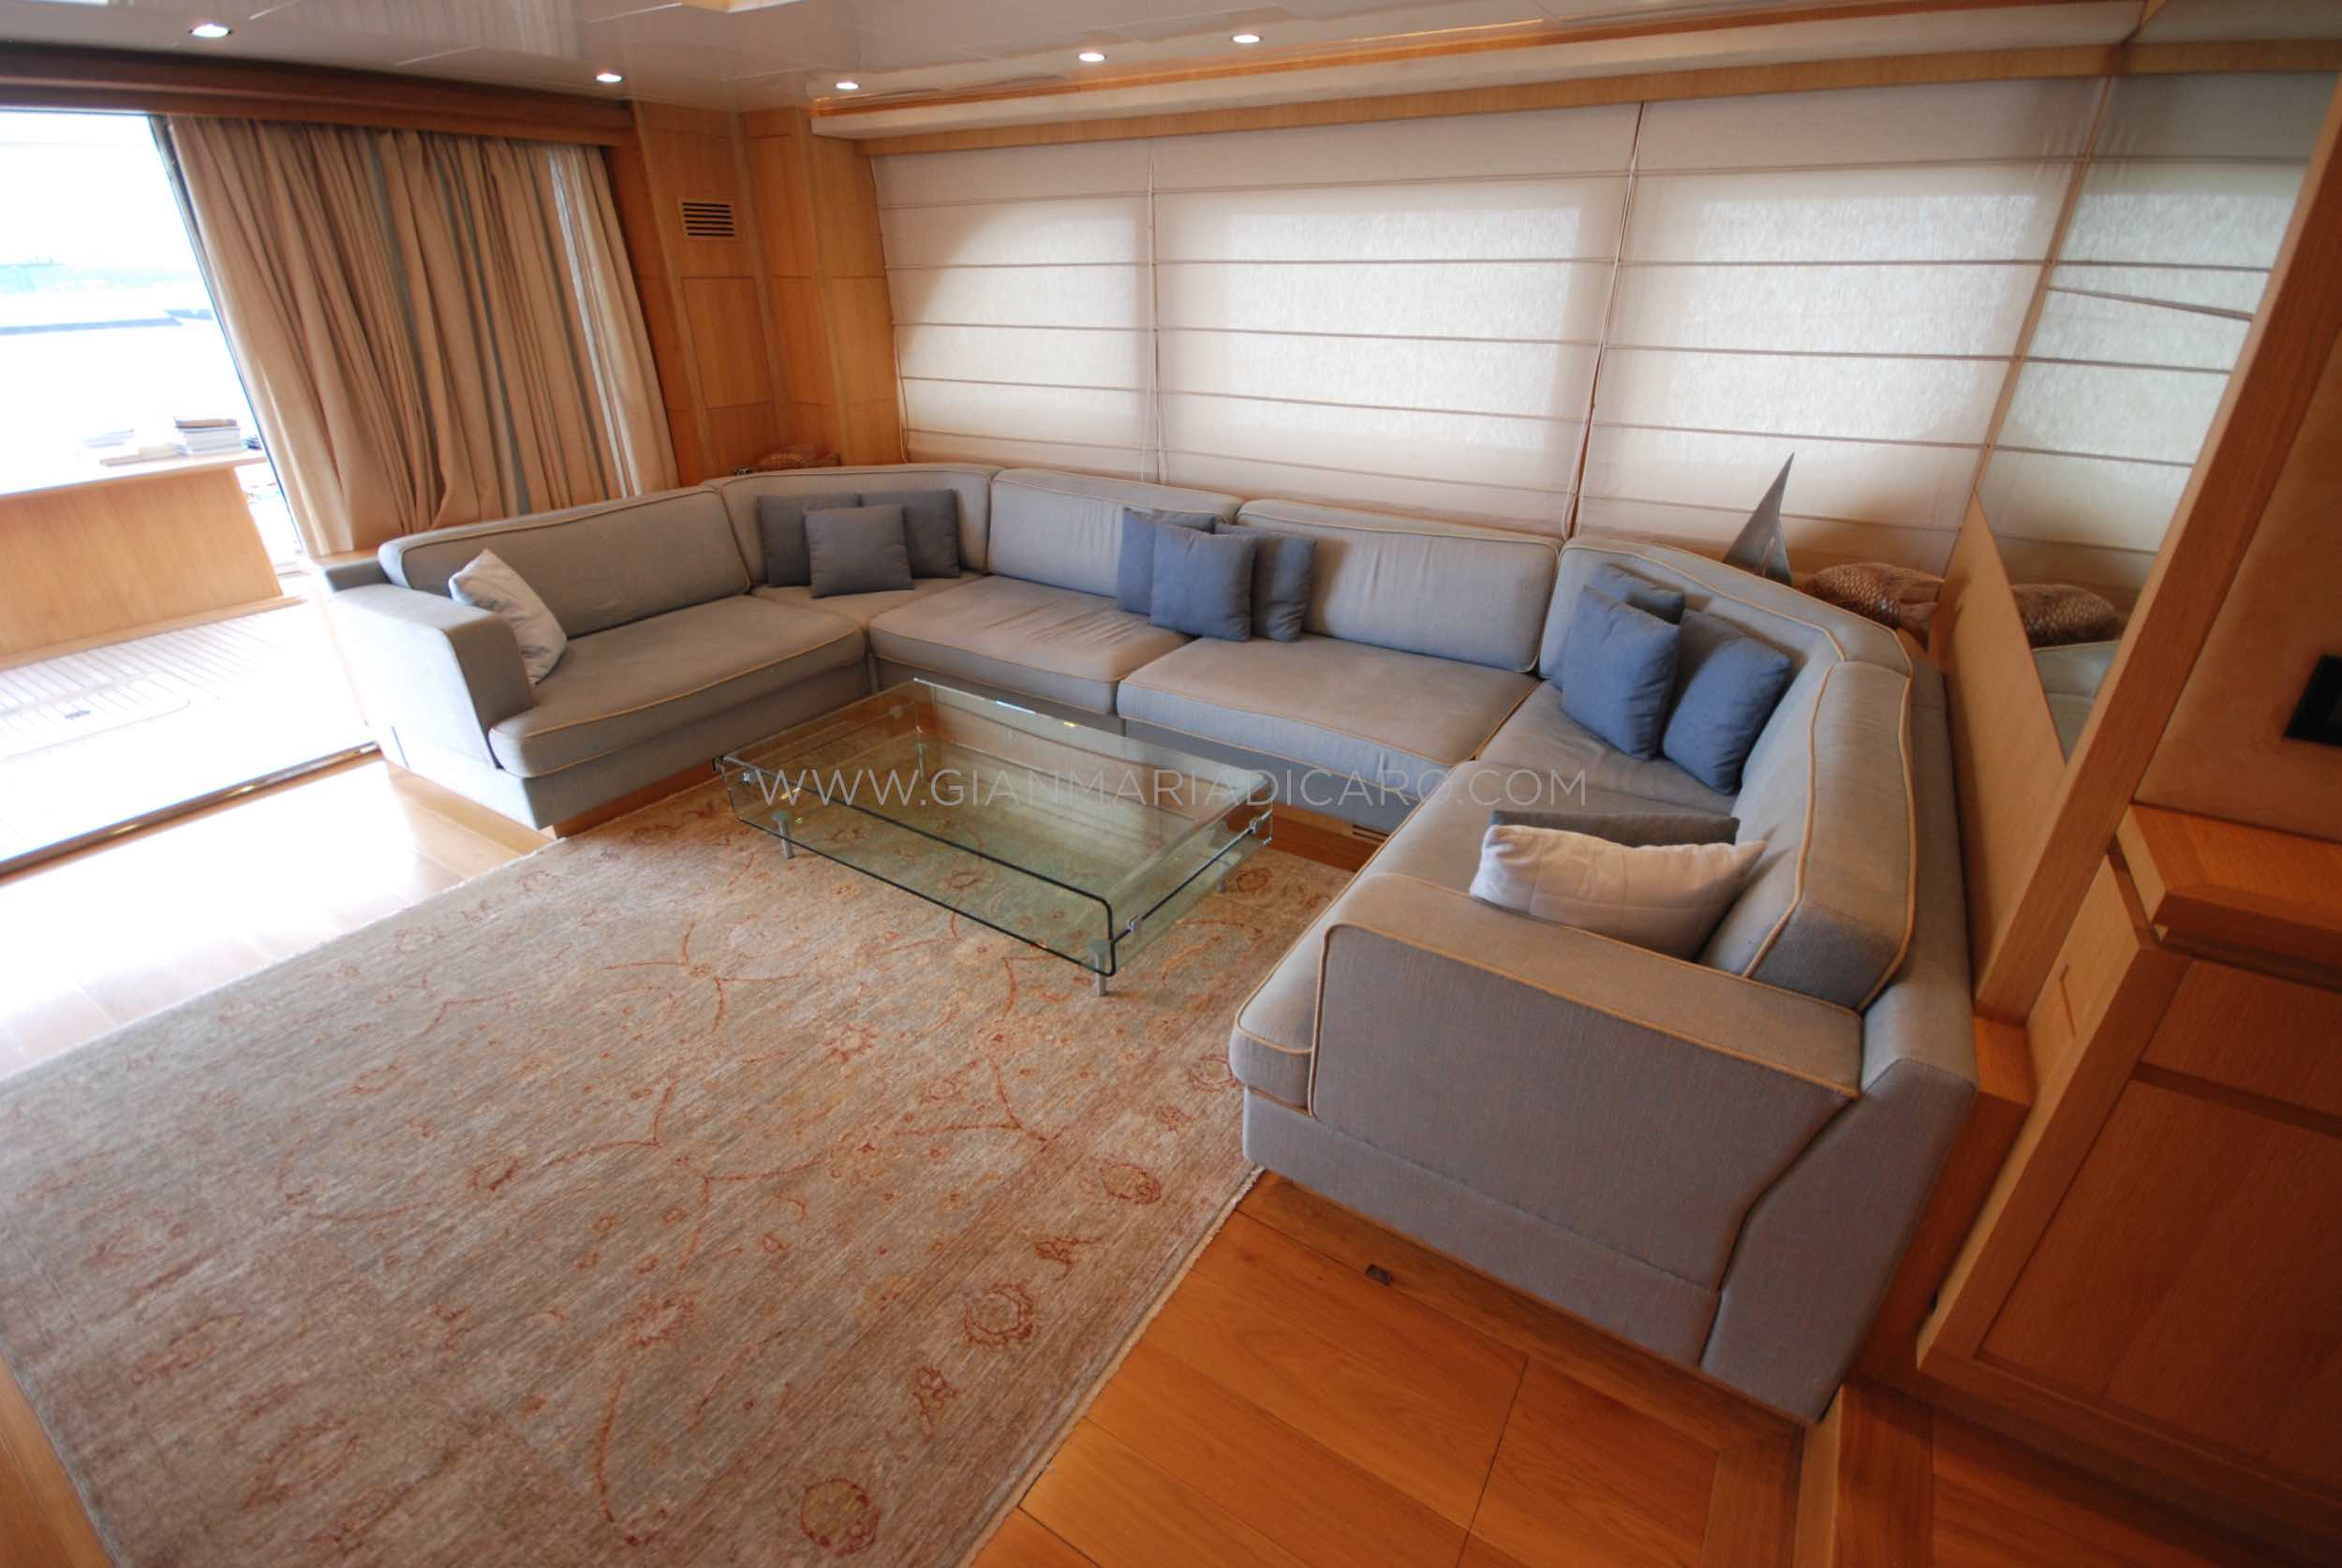 emys-yacht-22-unica-for-sale-118.jpg